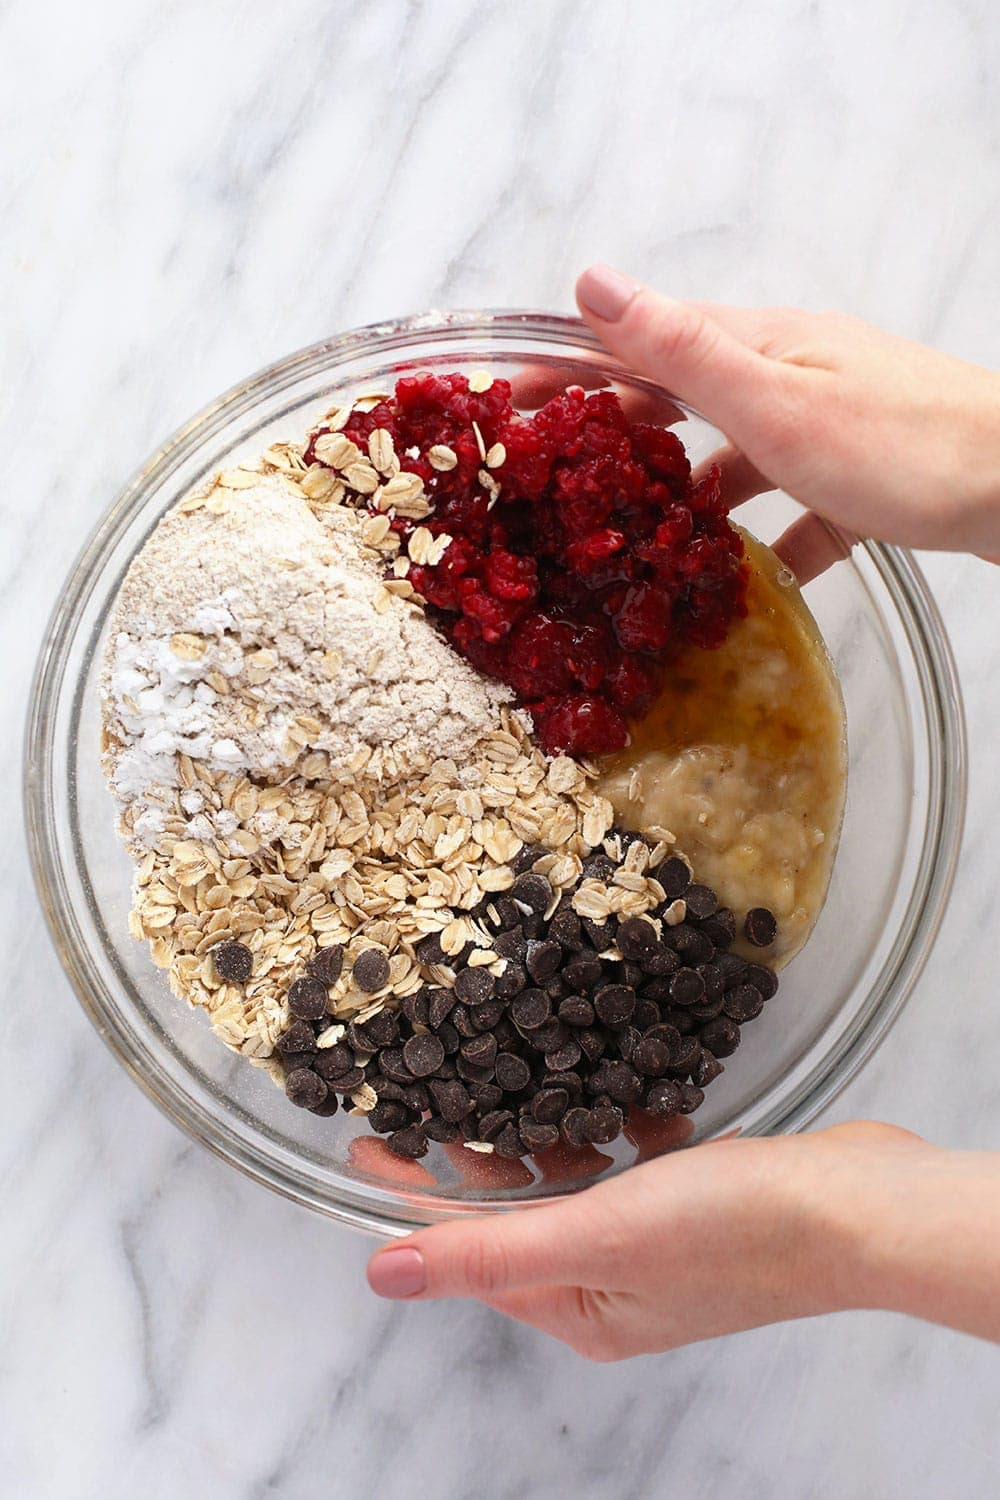 Raspberry baked oatmeal cups ingredients in bowl